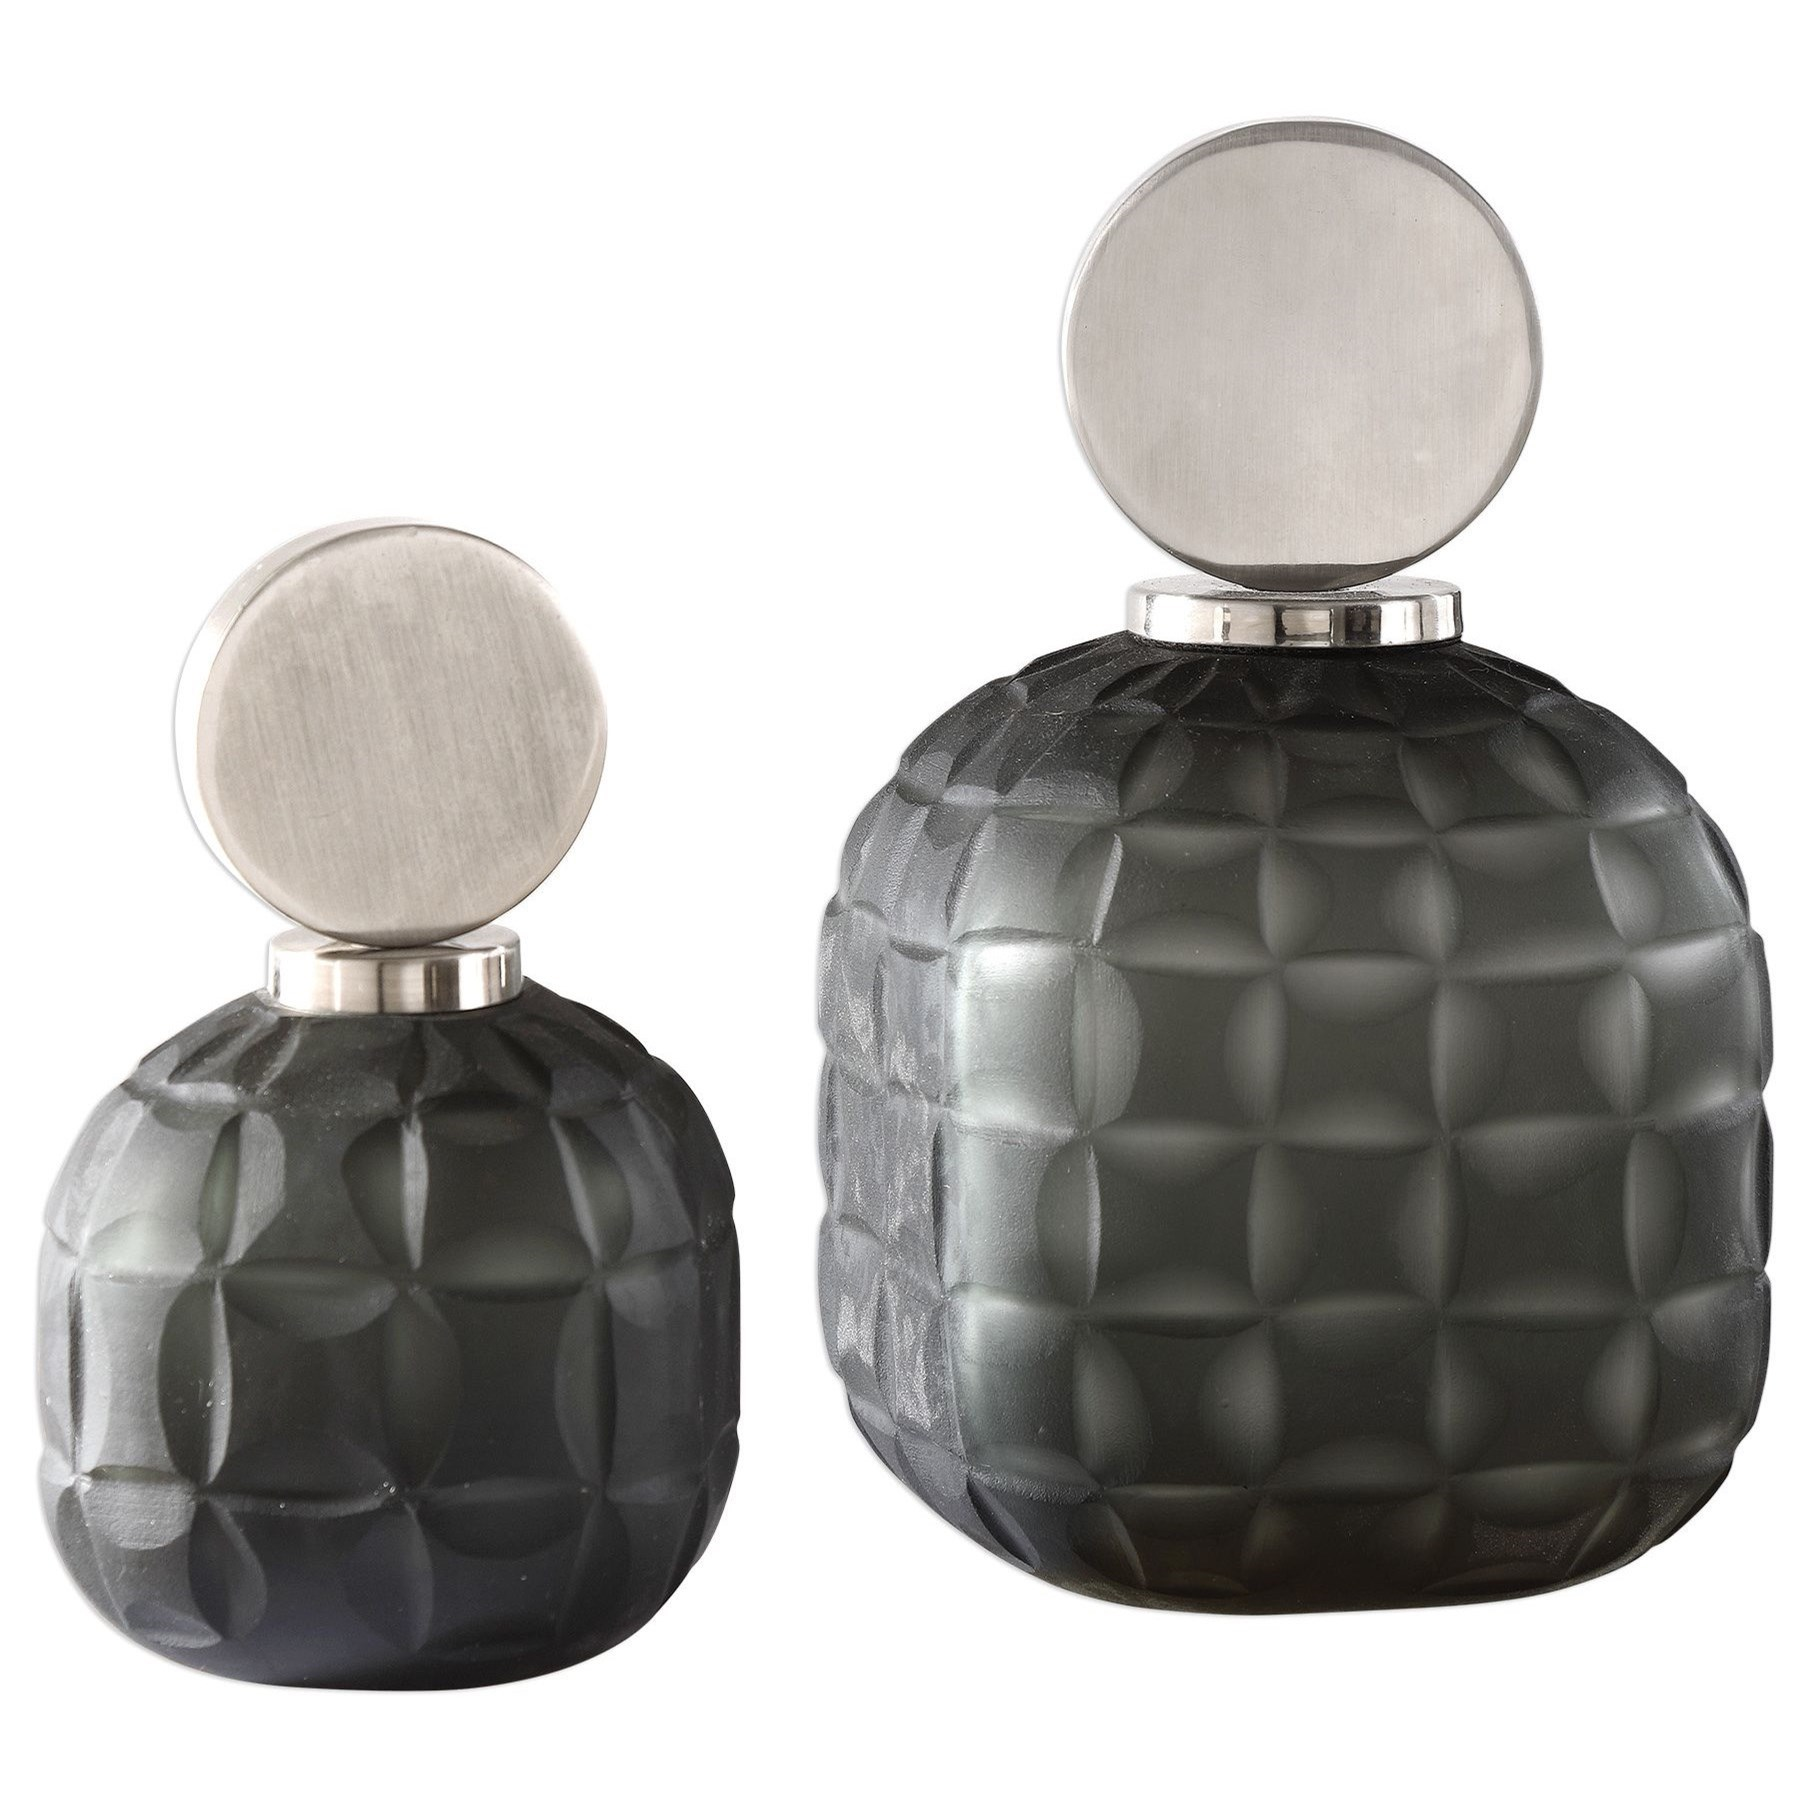 Accessories Nafuna Charcoal Glass Bottles S/2 by Uttermost at Upper Room Home Furnishings